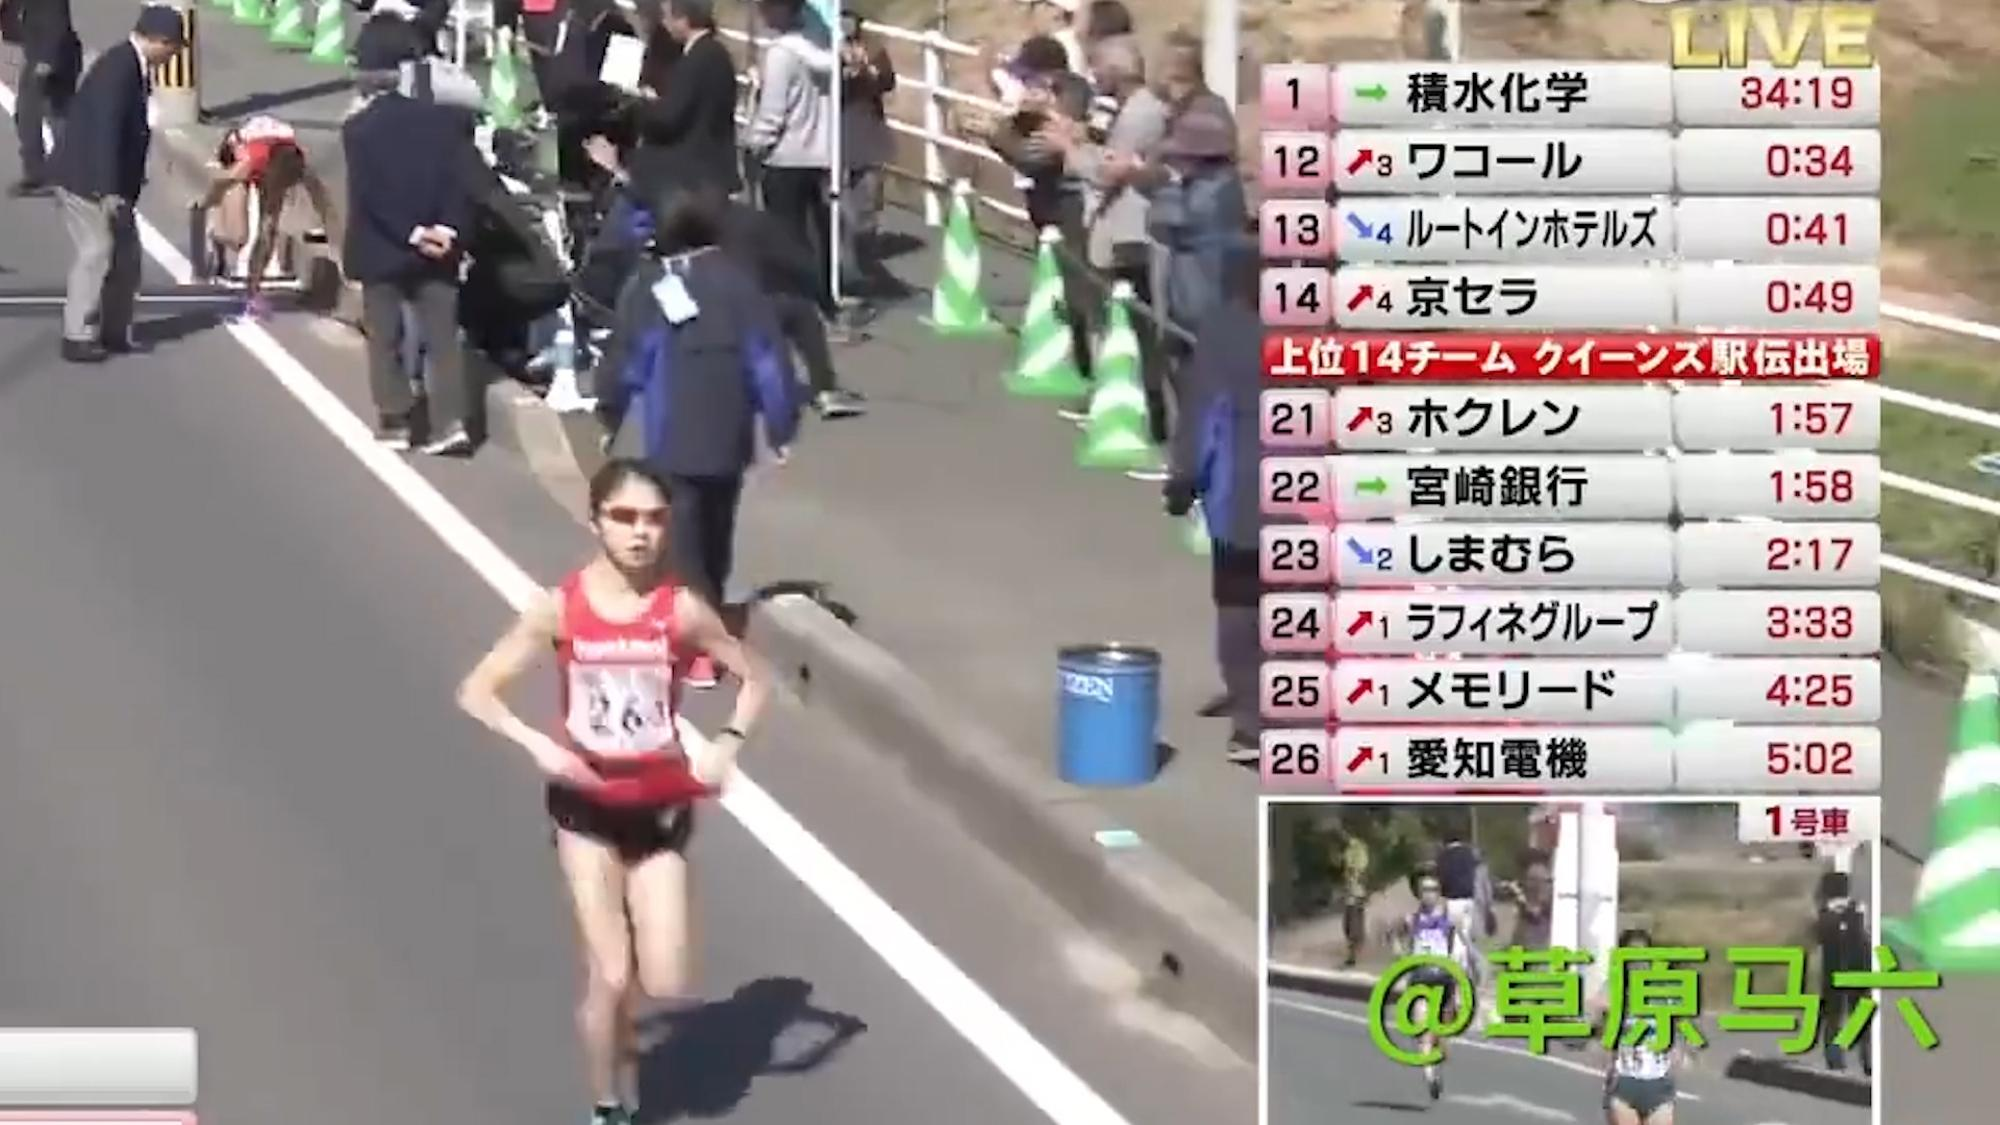 The athlete was running perfectly well until she reportedly fractured his leg